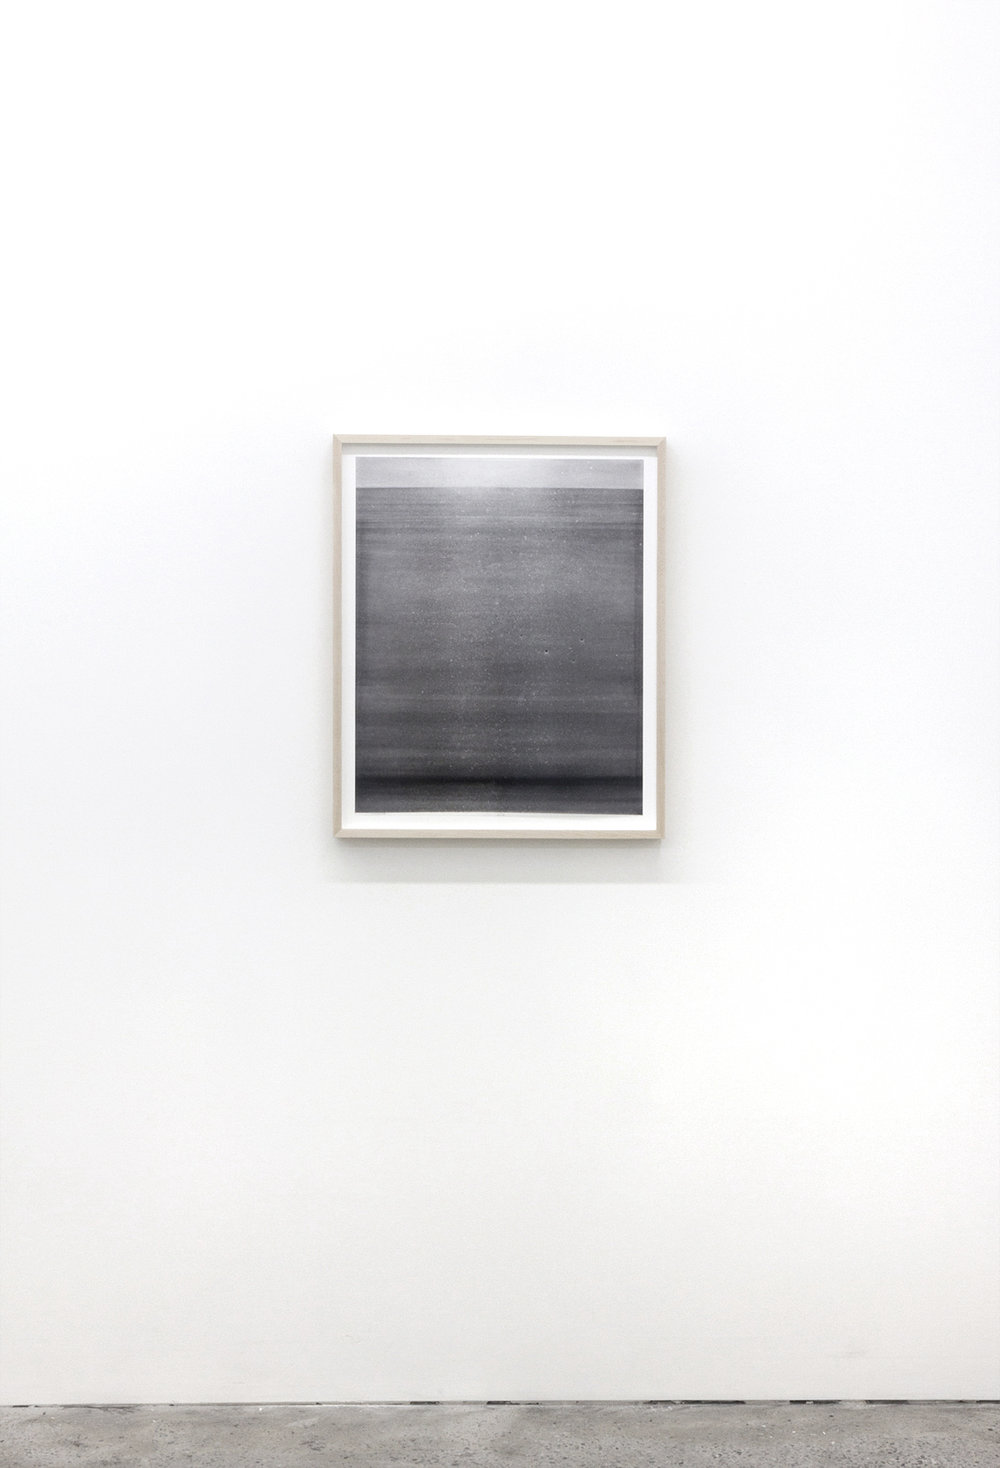 "Jim Verburg,  Untitled (de la série Metaphysical Obstacles and The Acceptance of the Inevitable),  2016, peinture à base d'huile sur Mylar givré, 27"" x 22"" (67 x 56 cm)."